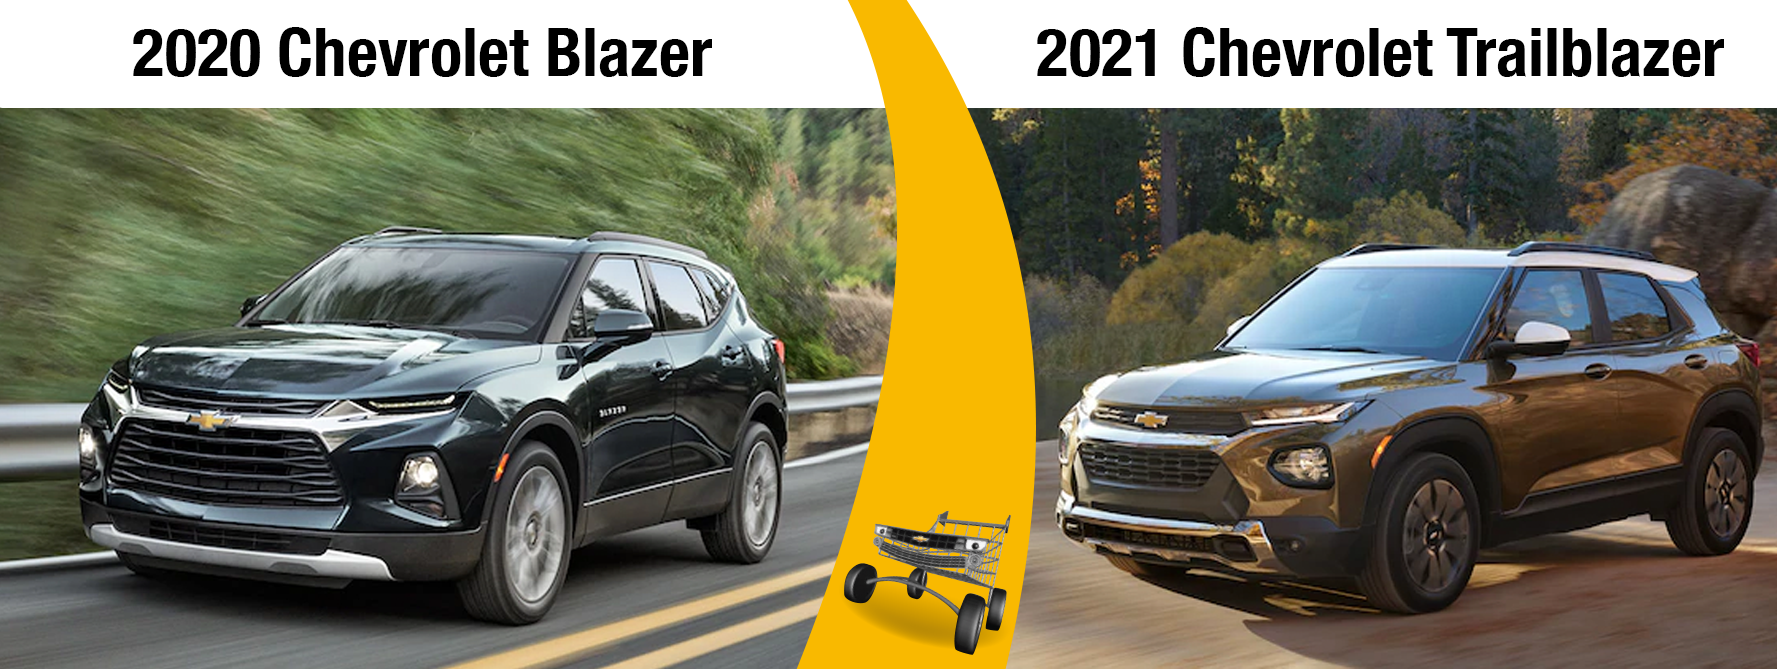 What is the Difference Between Chevy Blazer and Trailblazer?